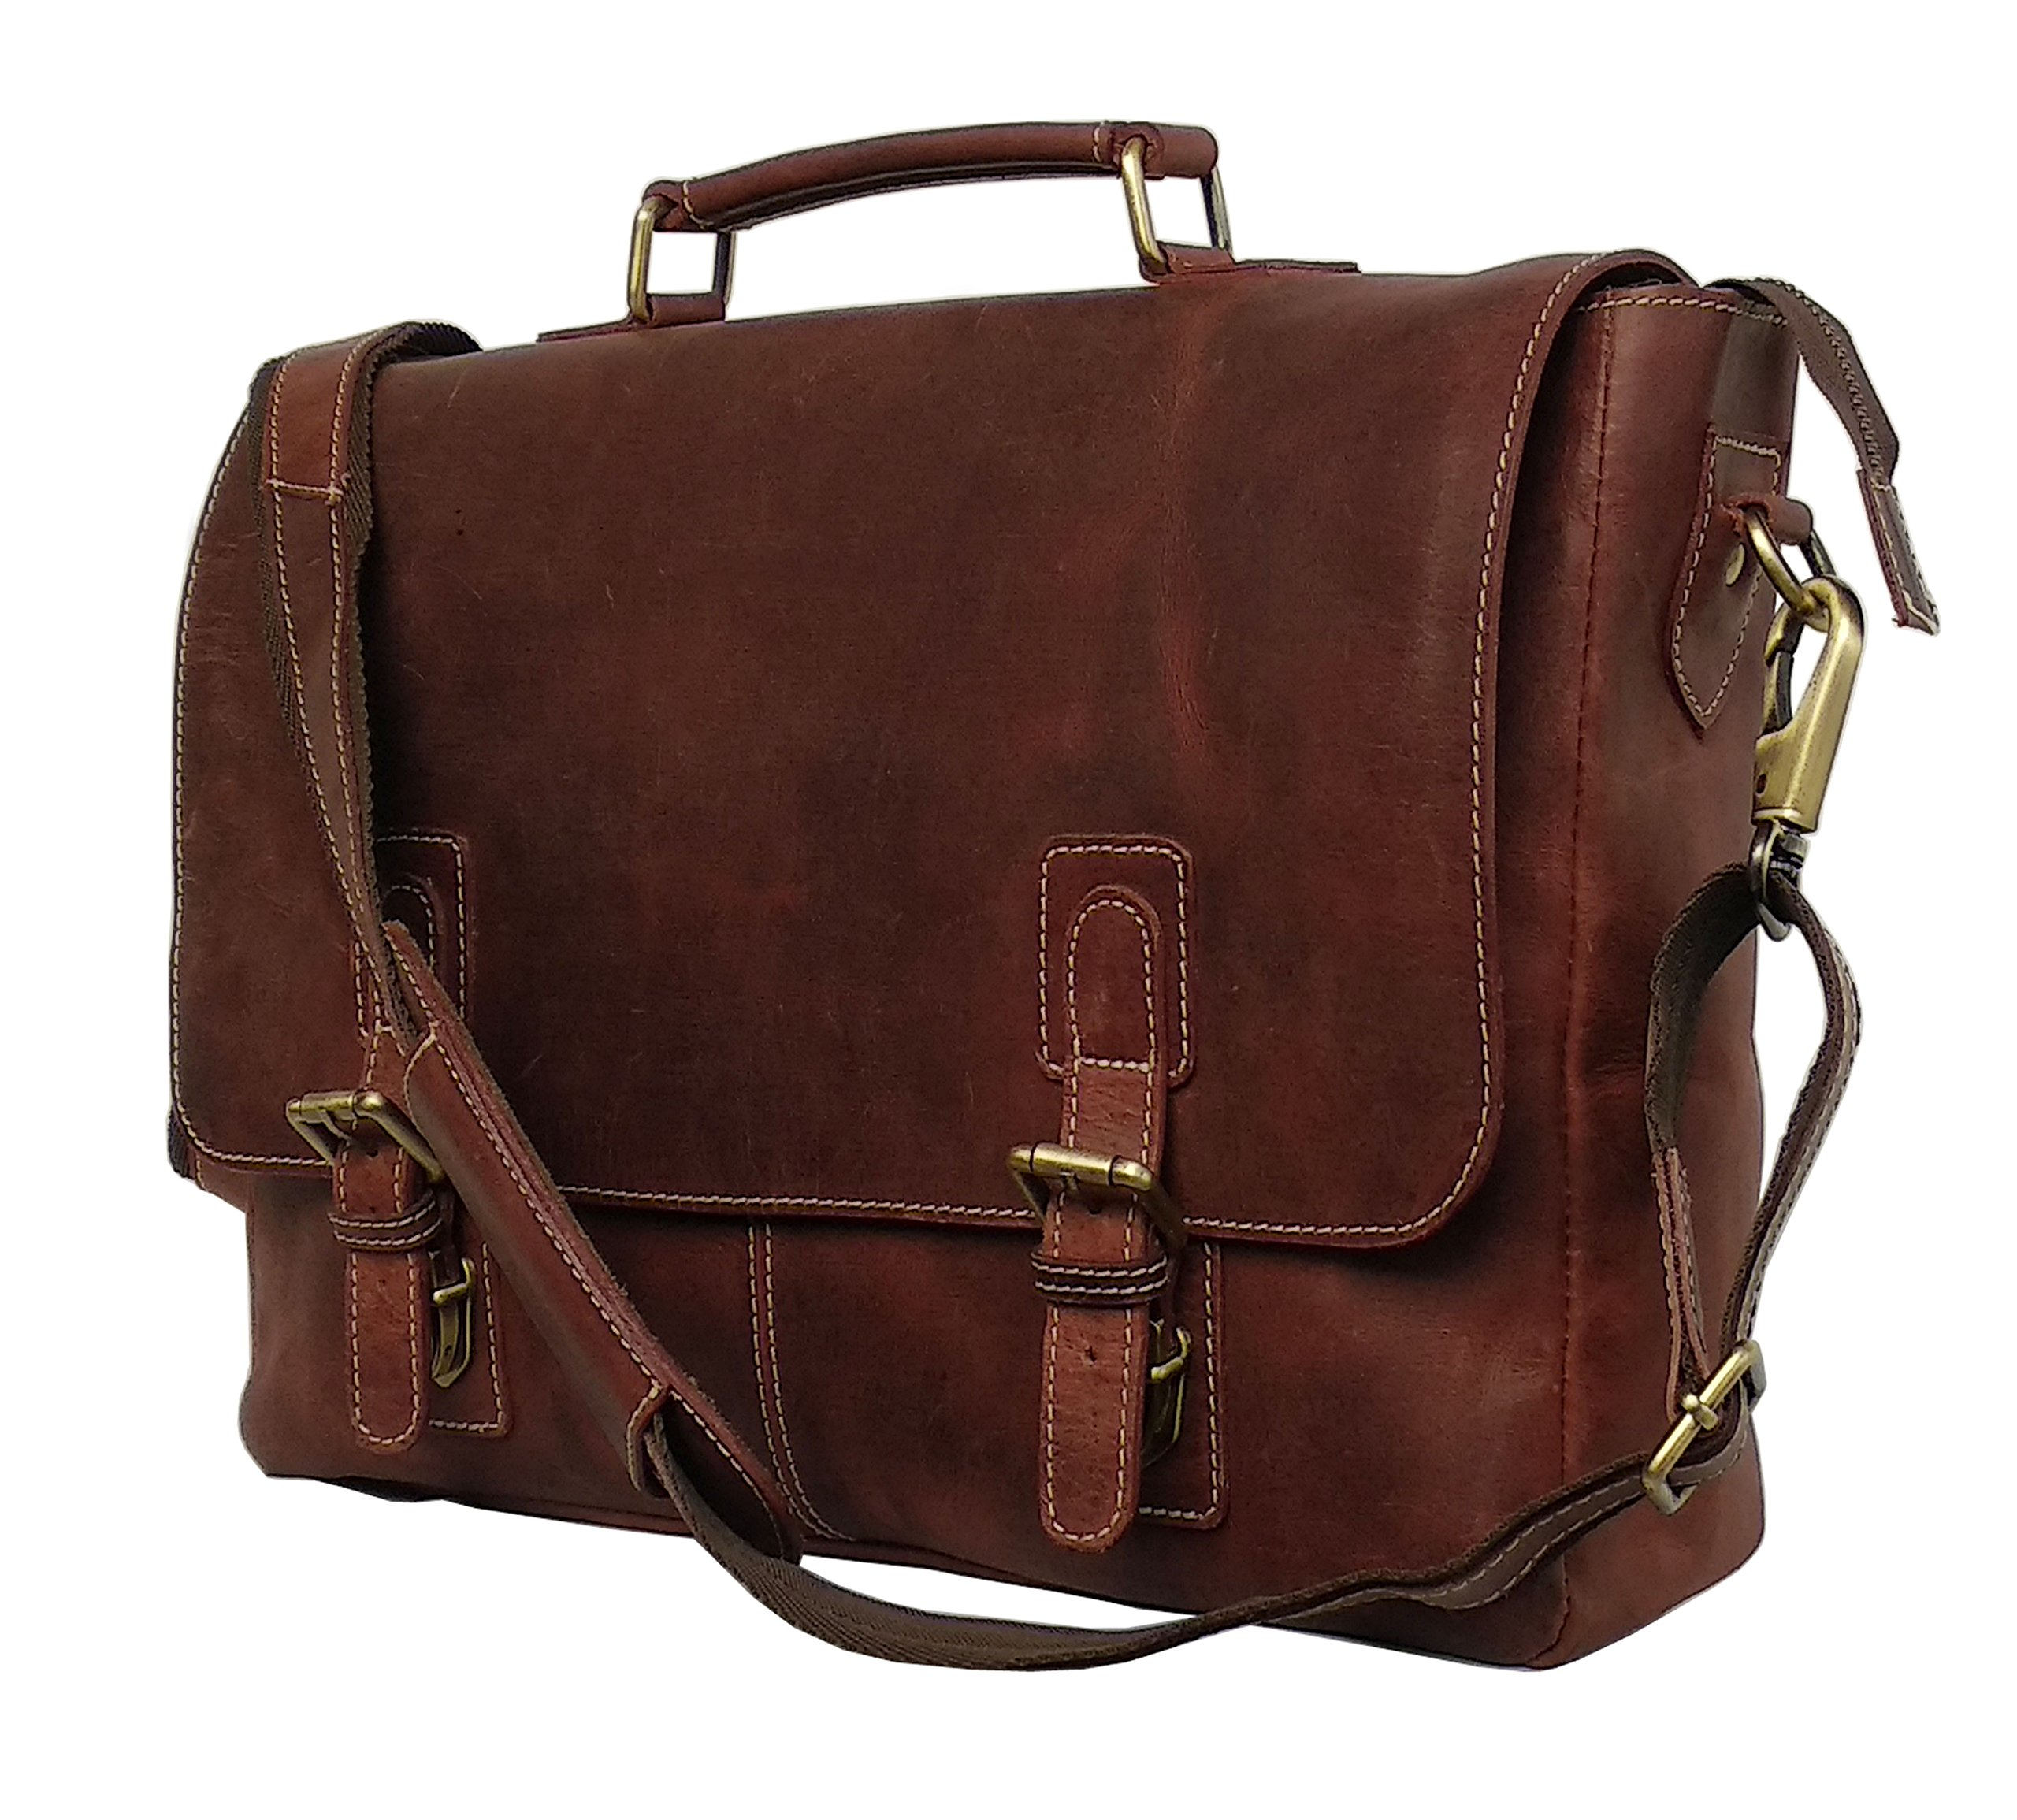 16'' Inch Retro Buffalo Hunter Leather Laptop Messenger Bag Office Briefcase College Bag leather bag for men and women